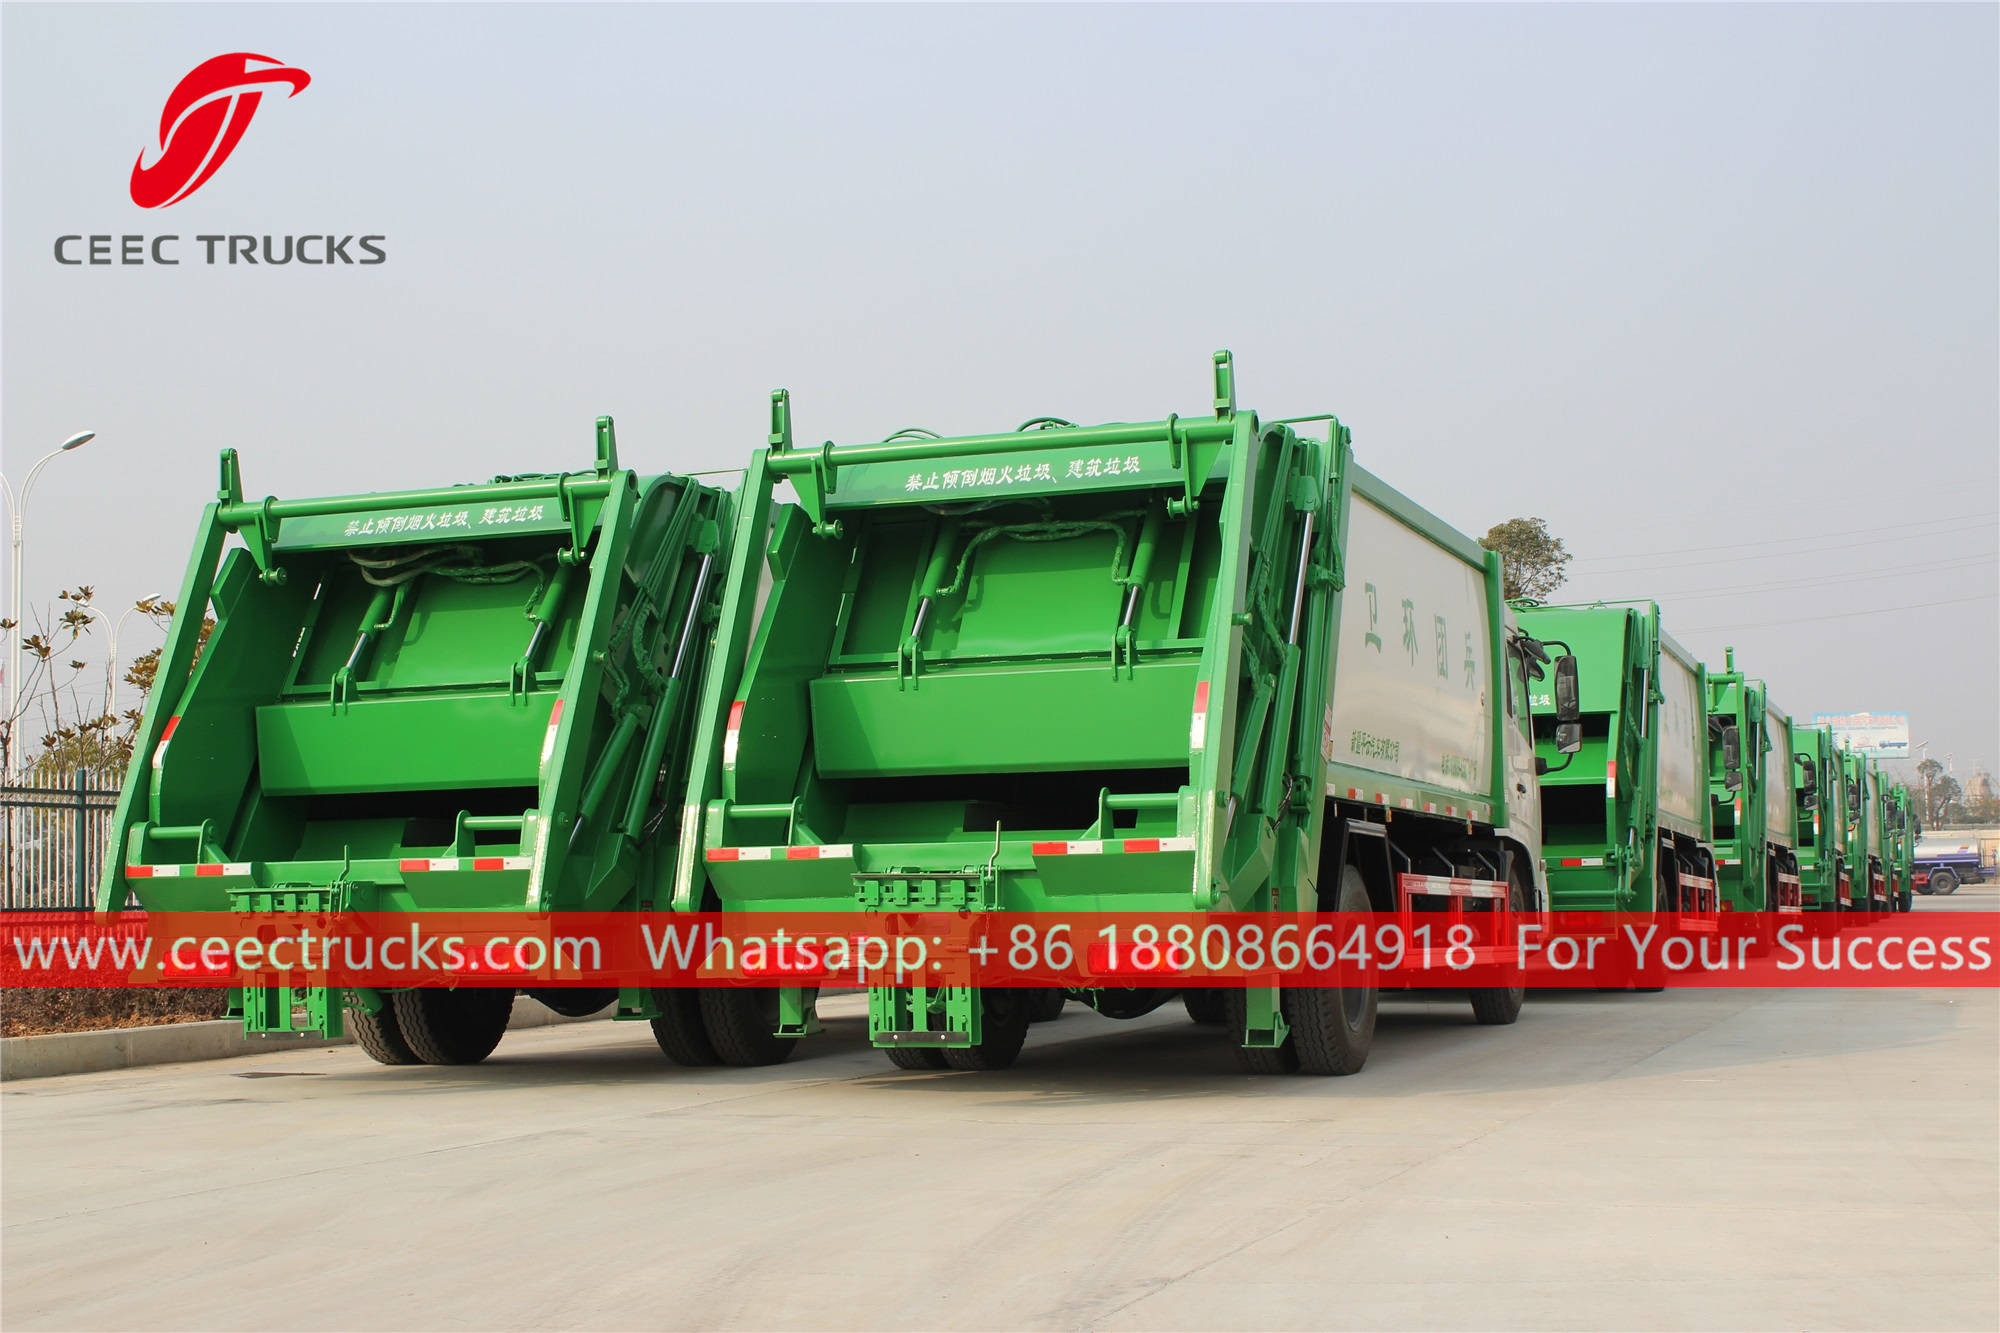 20 units rear loader waste truck are finished production